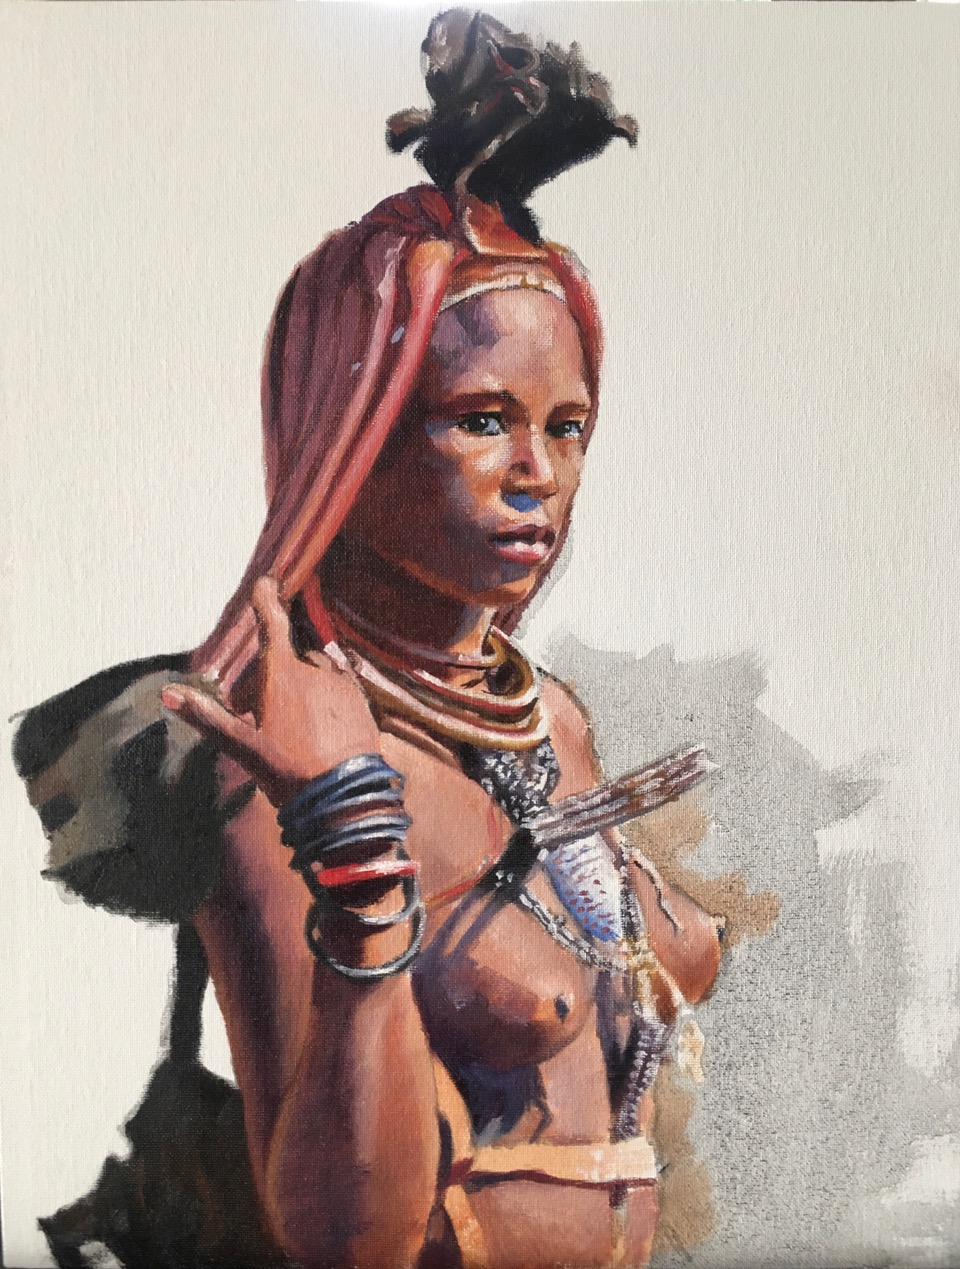 I too have a voice Himba Girl 2020   20 x 16 inches oil on canvas board